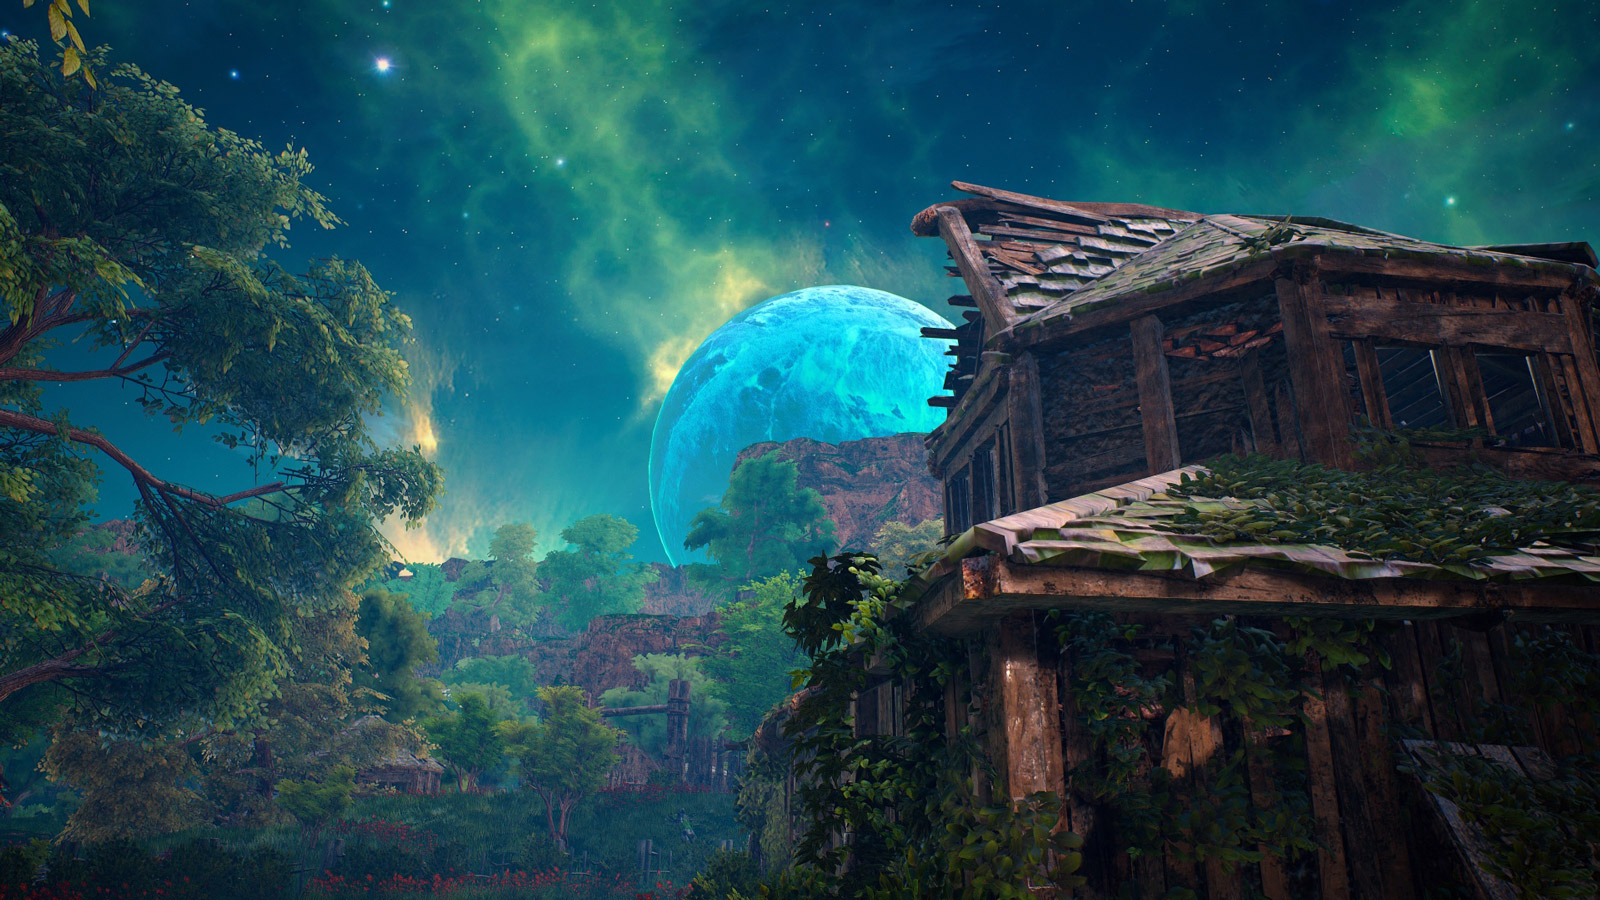 Free BioMutant Wallpaper in 1600x900